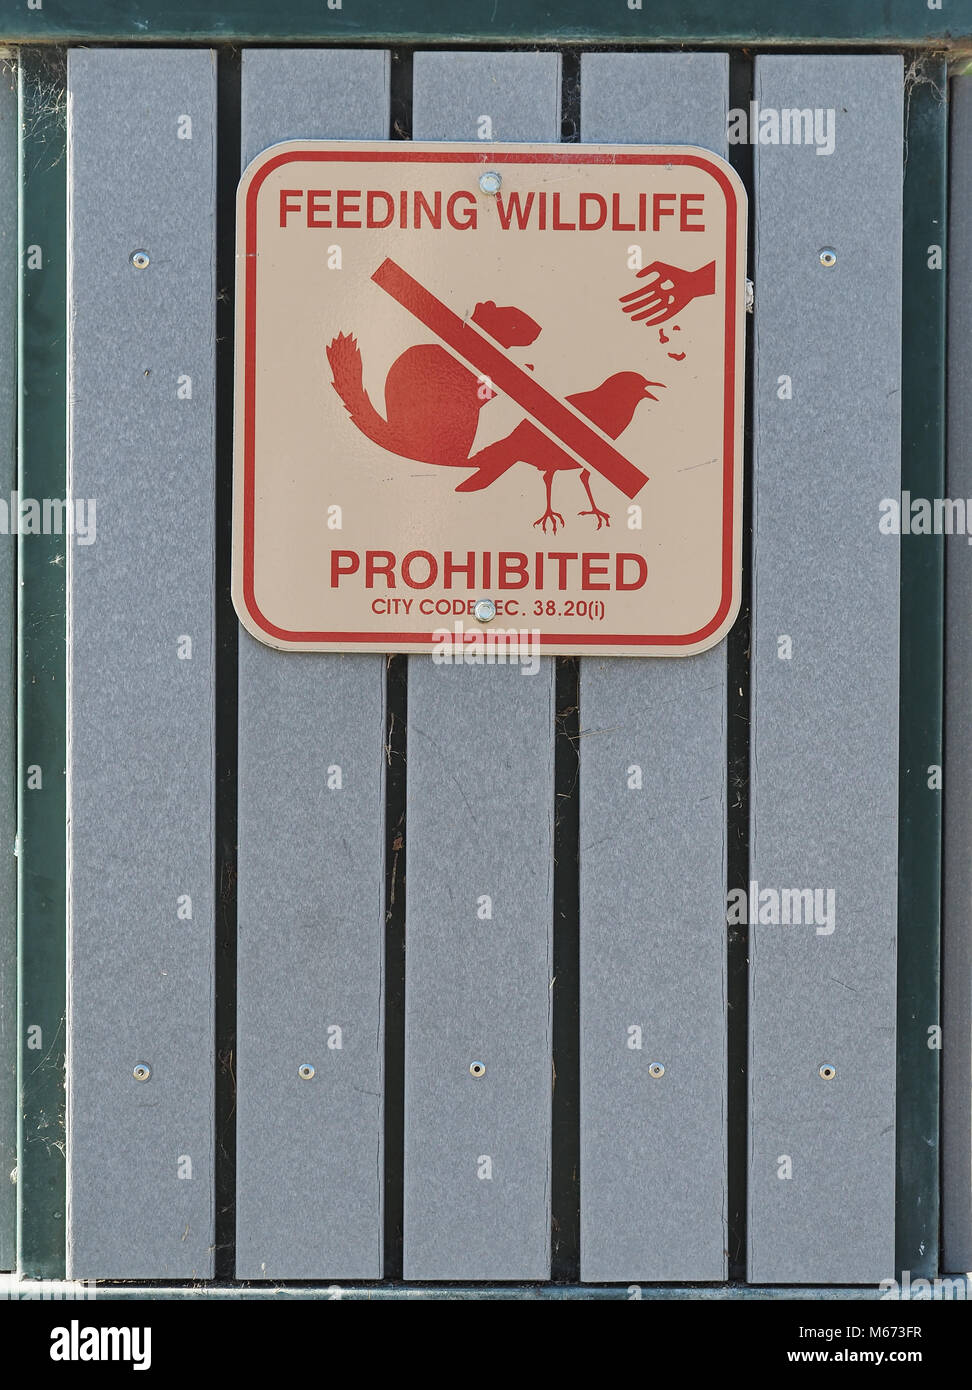 'Feeding wildlife prohibited' sign on a trash can in a park in San Francisco, California - Stock Image